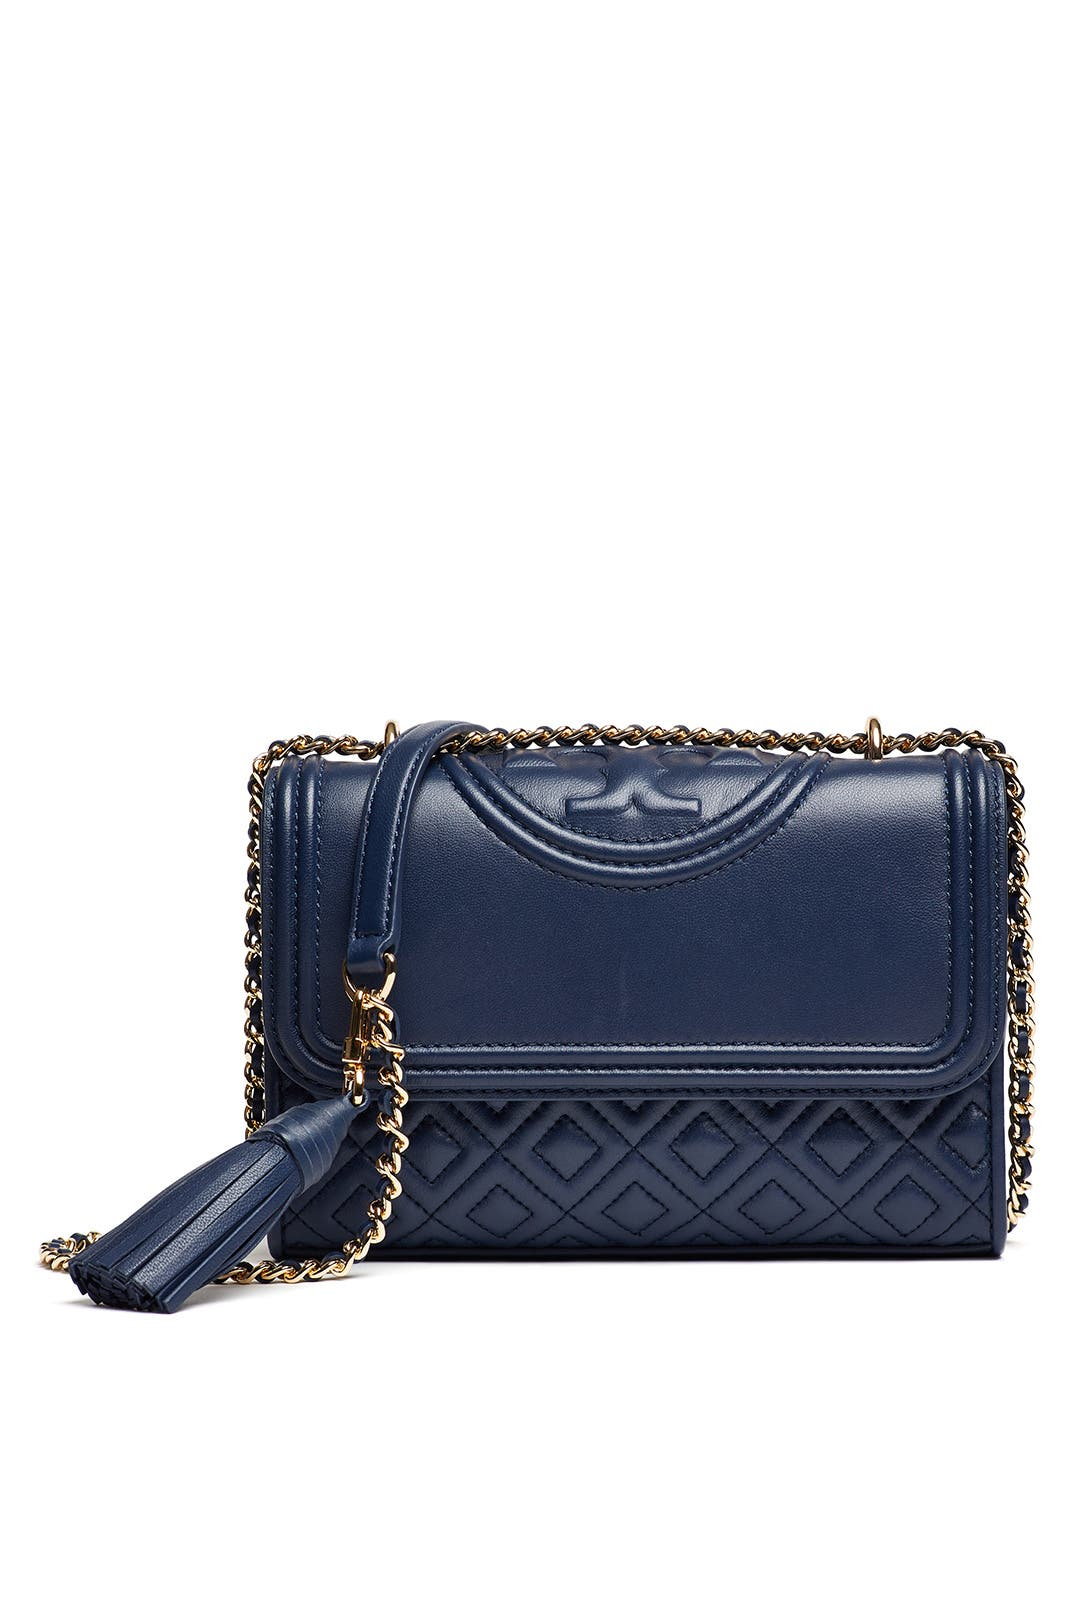 9722f3550075 Navy Fleming Small Convertible Bag by Tory Burch Accessories for  70 ...